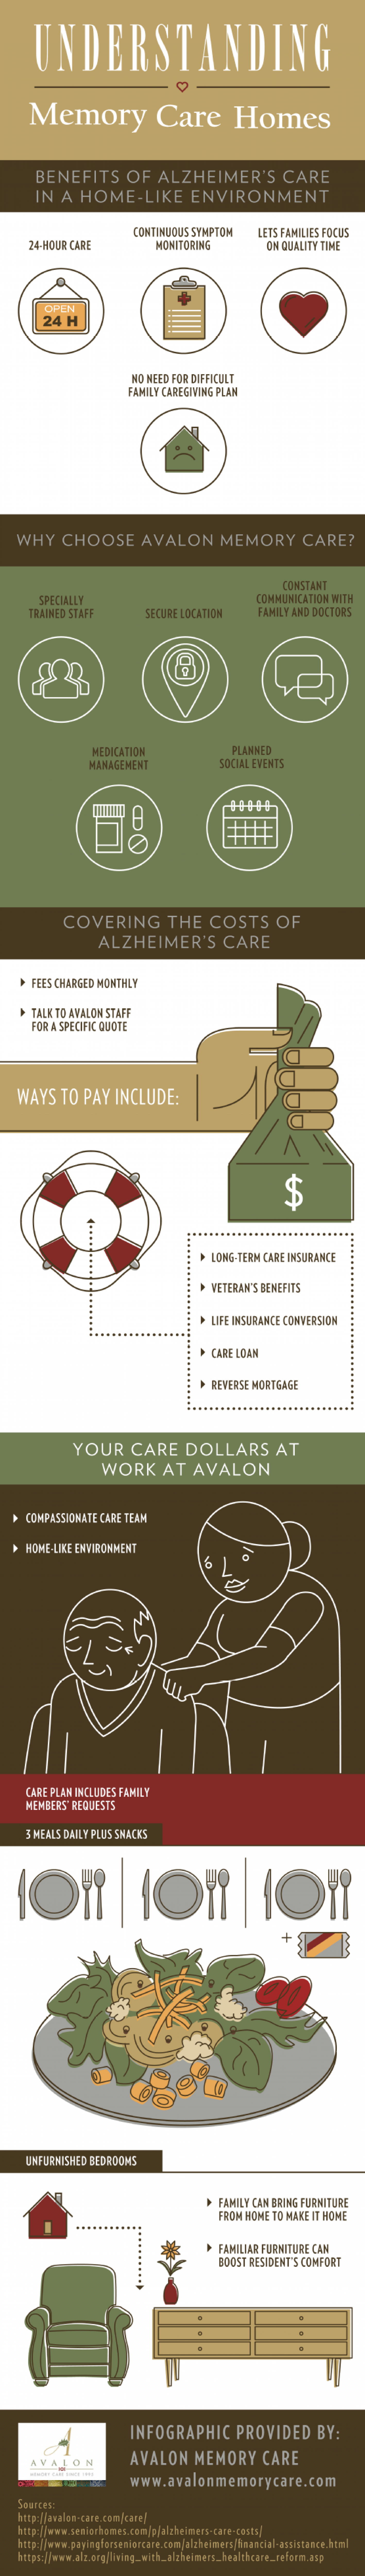 Understanding Memory Care Homes Infographic